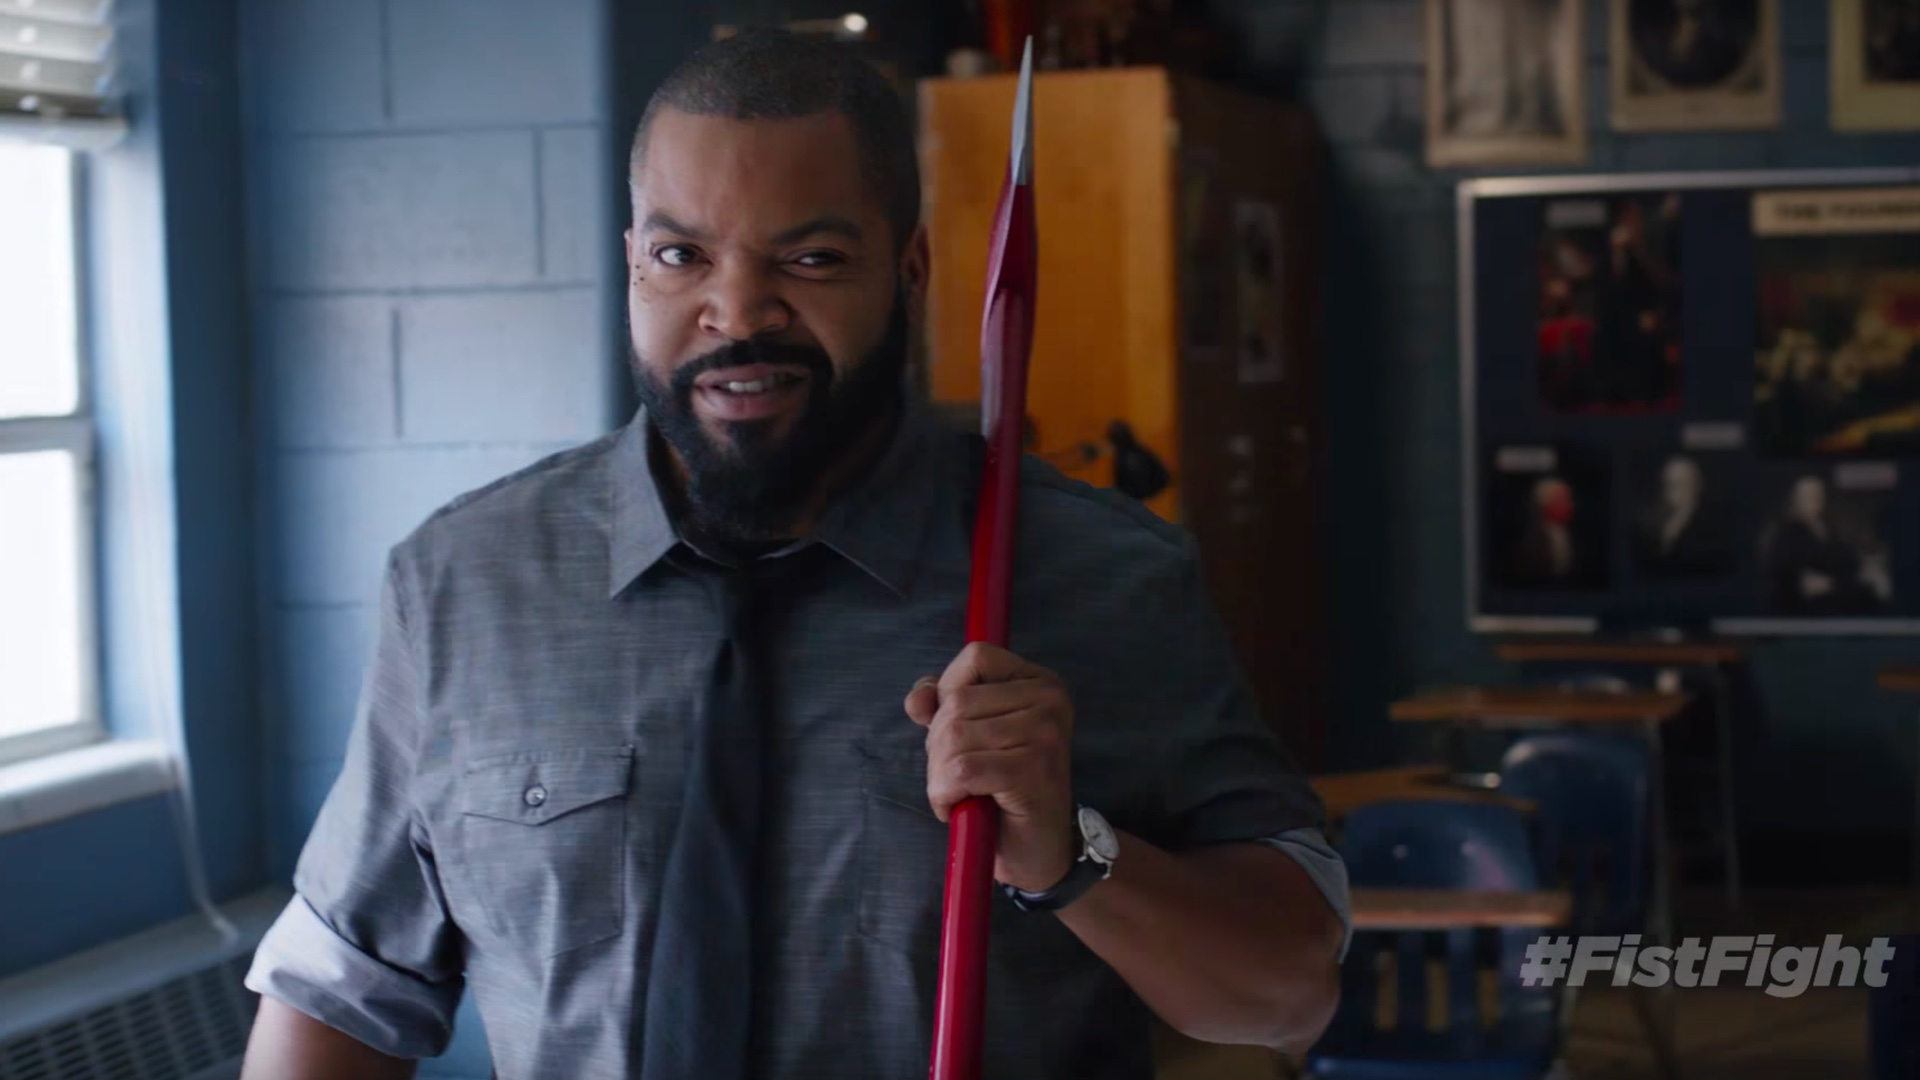 hilarious-red-band-trailer-for-fist-fight-shows-ice-cube-ready-to-fight-charlie-day